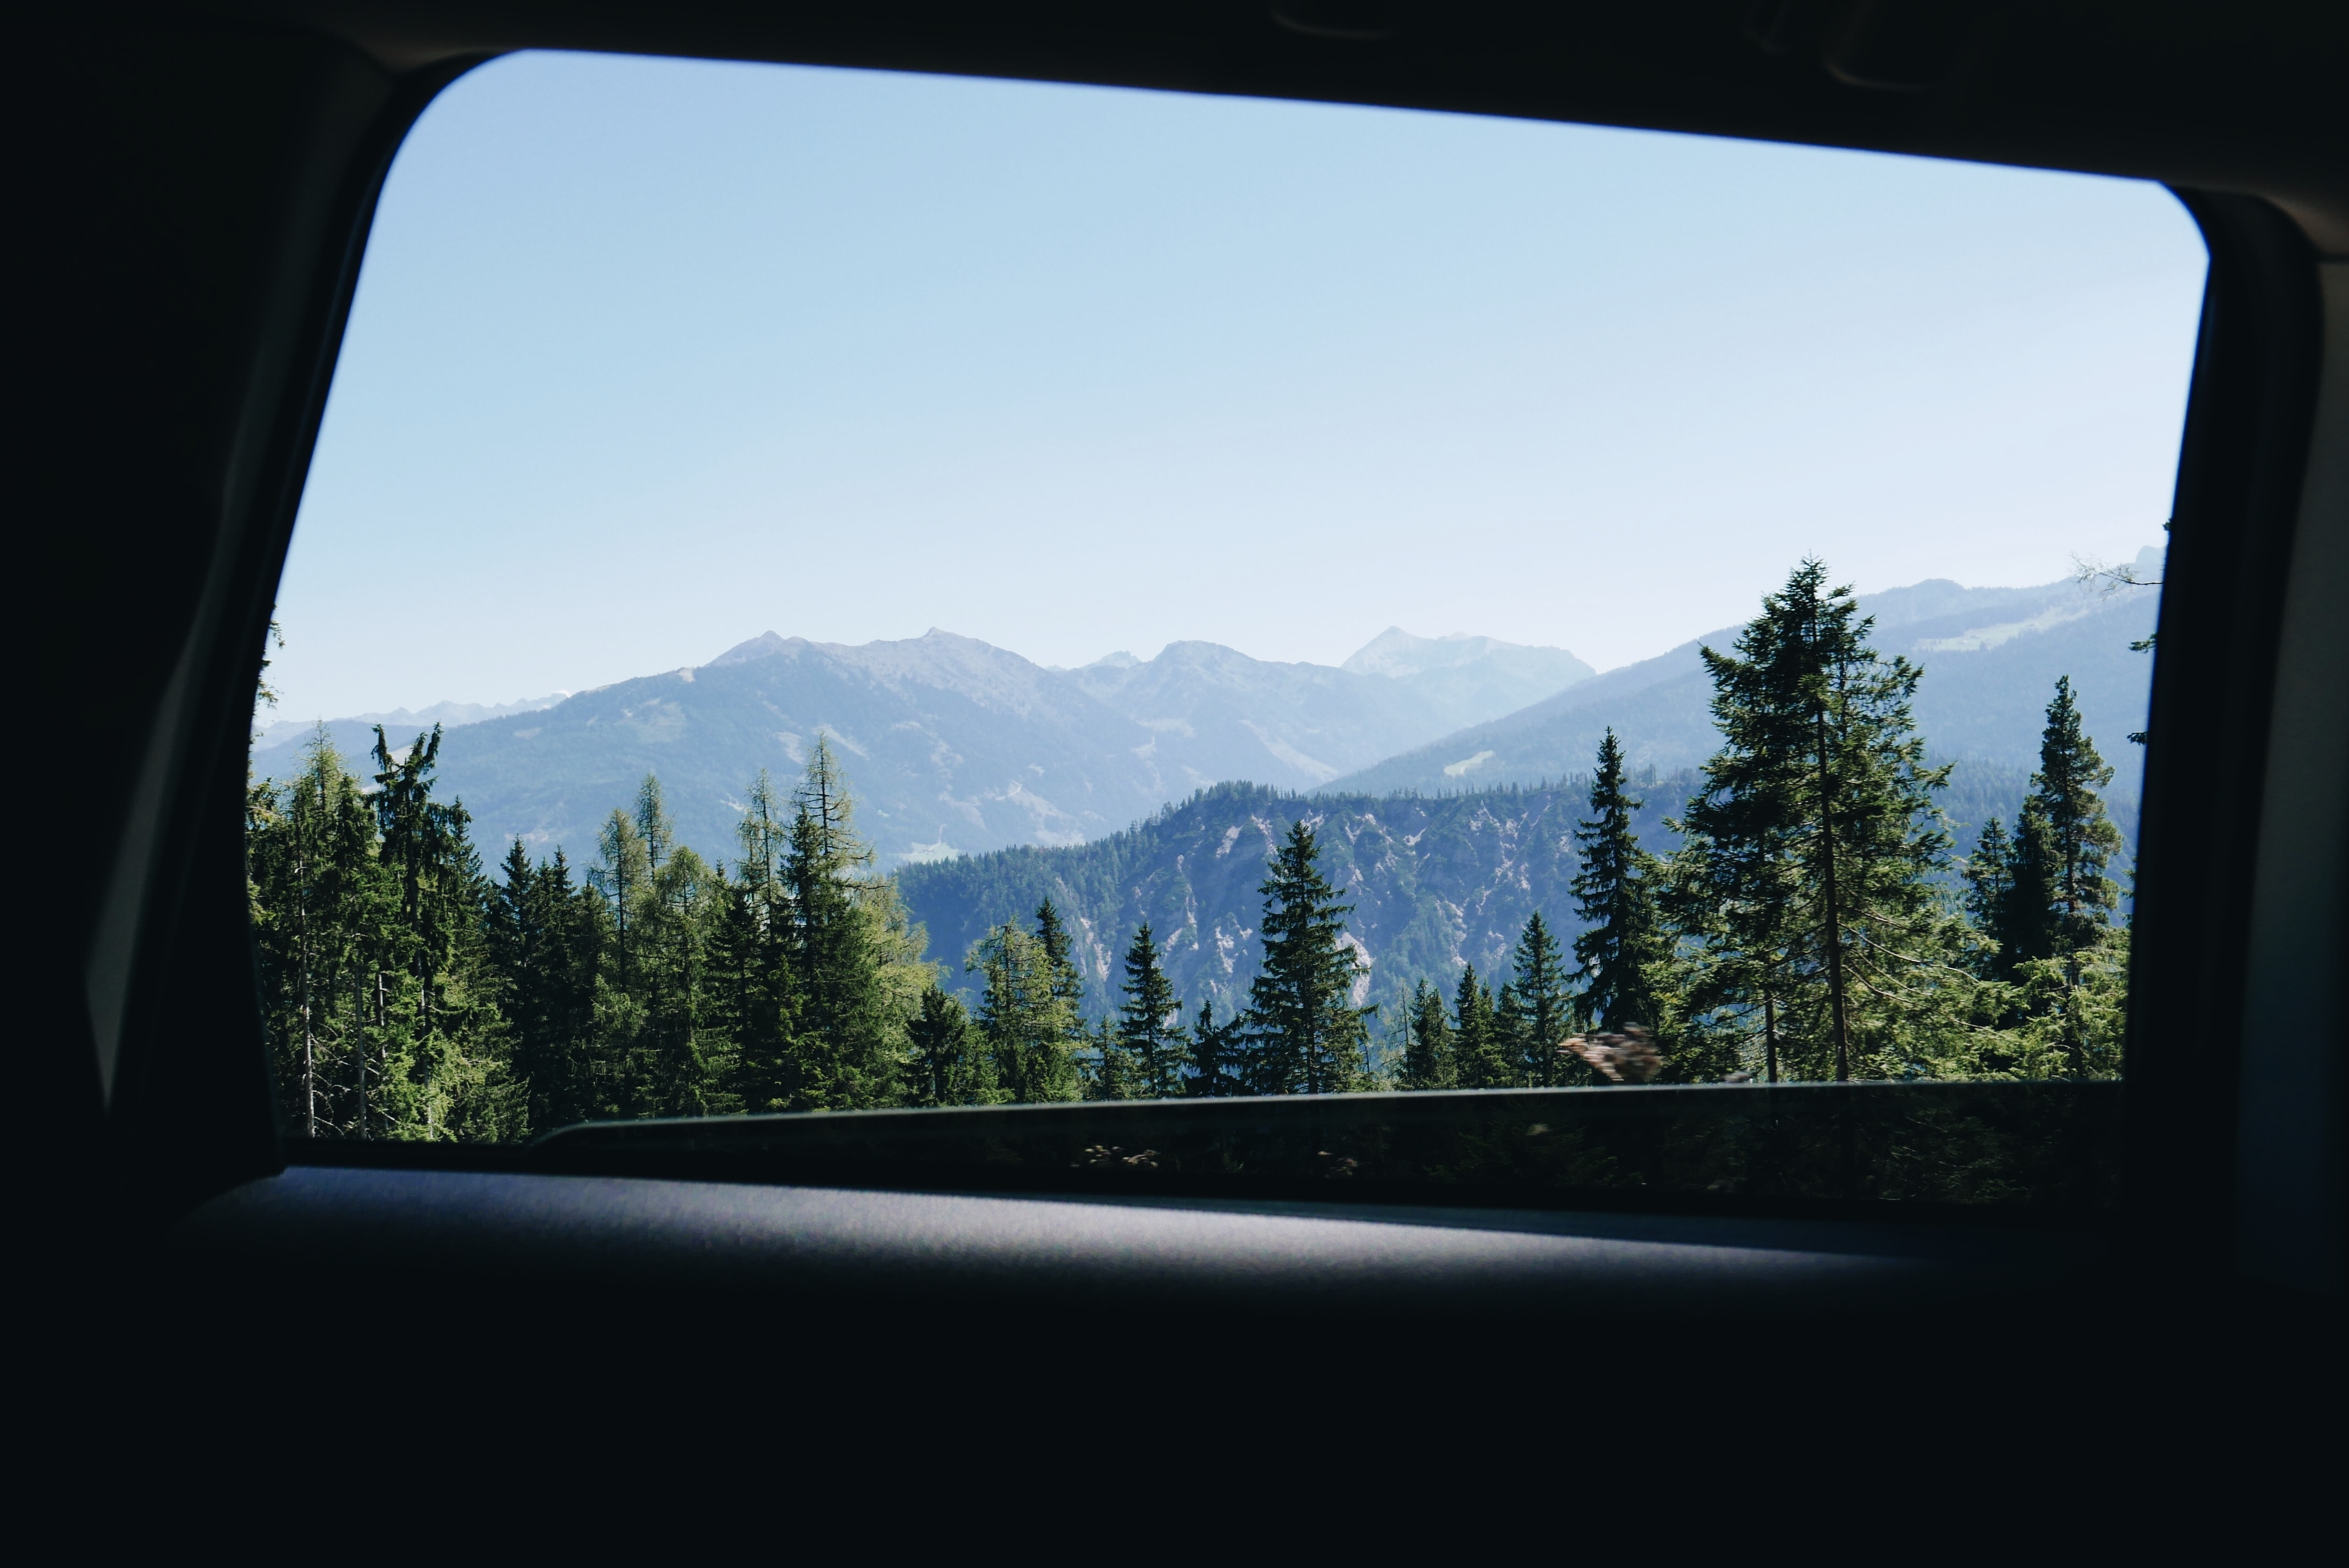 View from a car window on wooded slopes on a sunny day